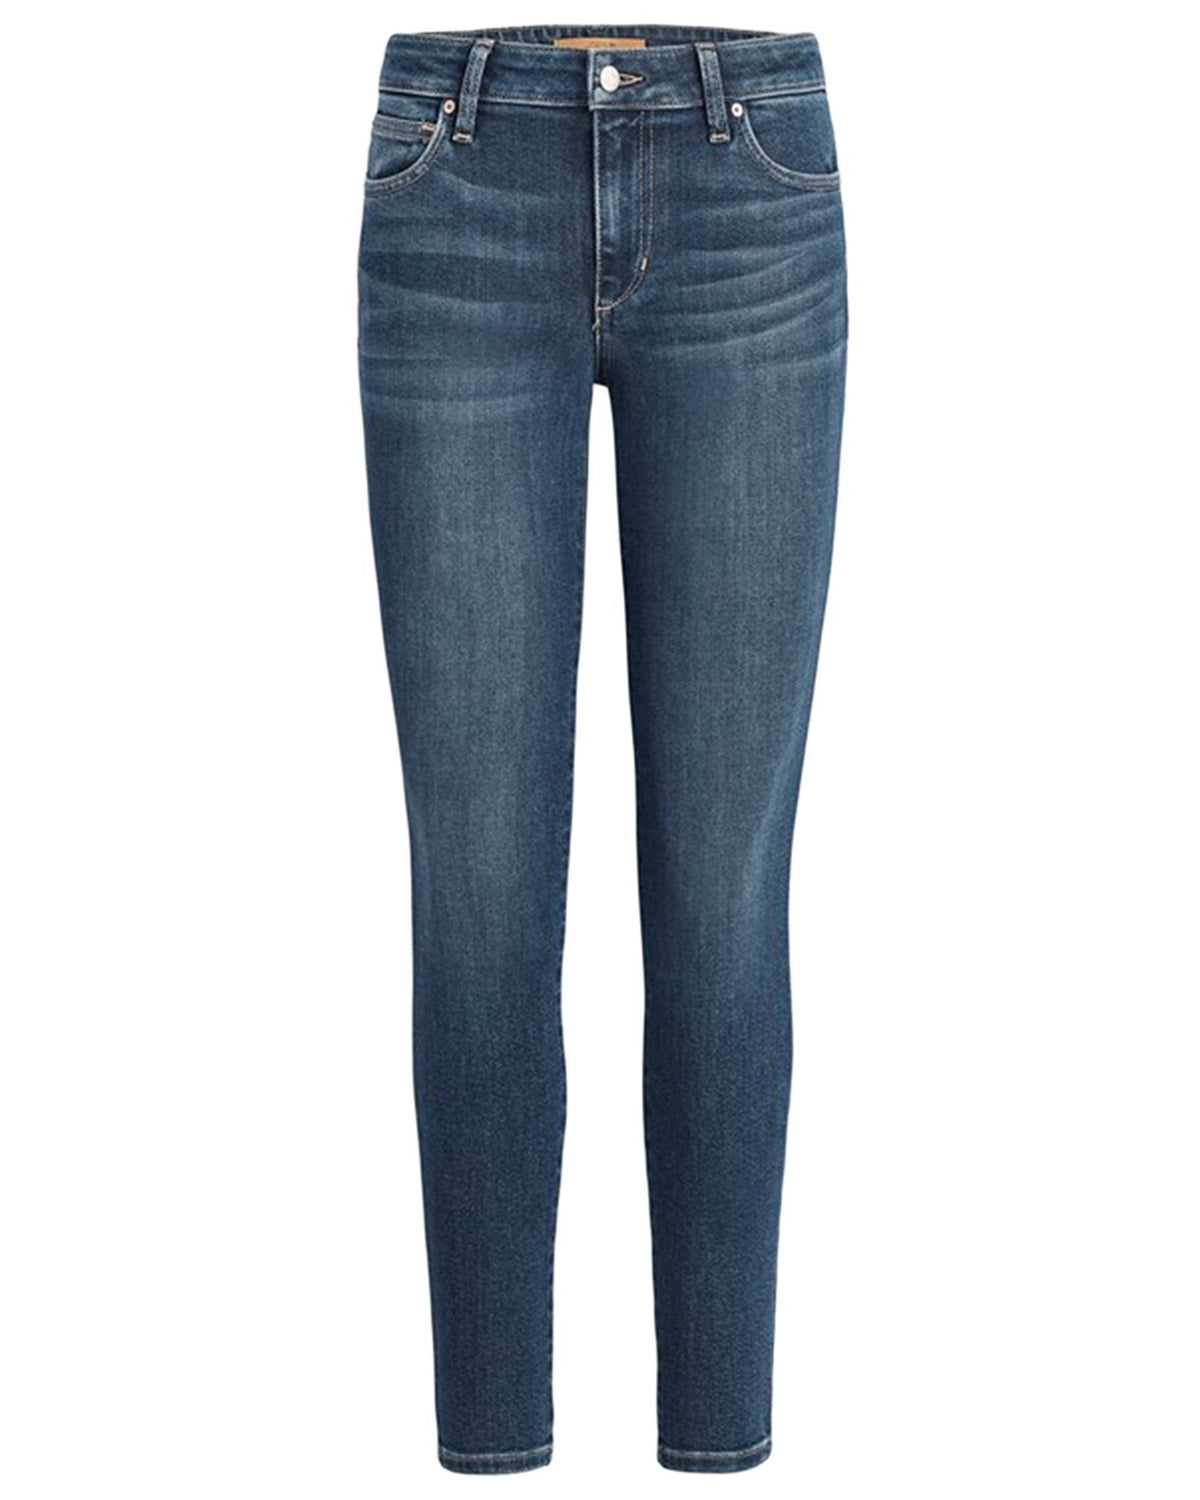 Joe's Jeans Denim Jenifer / 25 The Icon Ankle in Jenifer